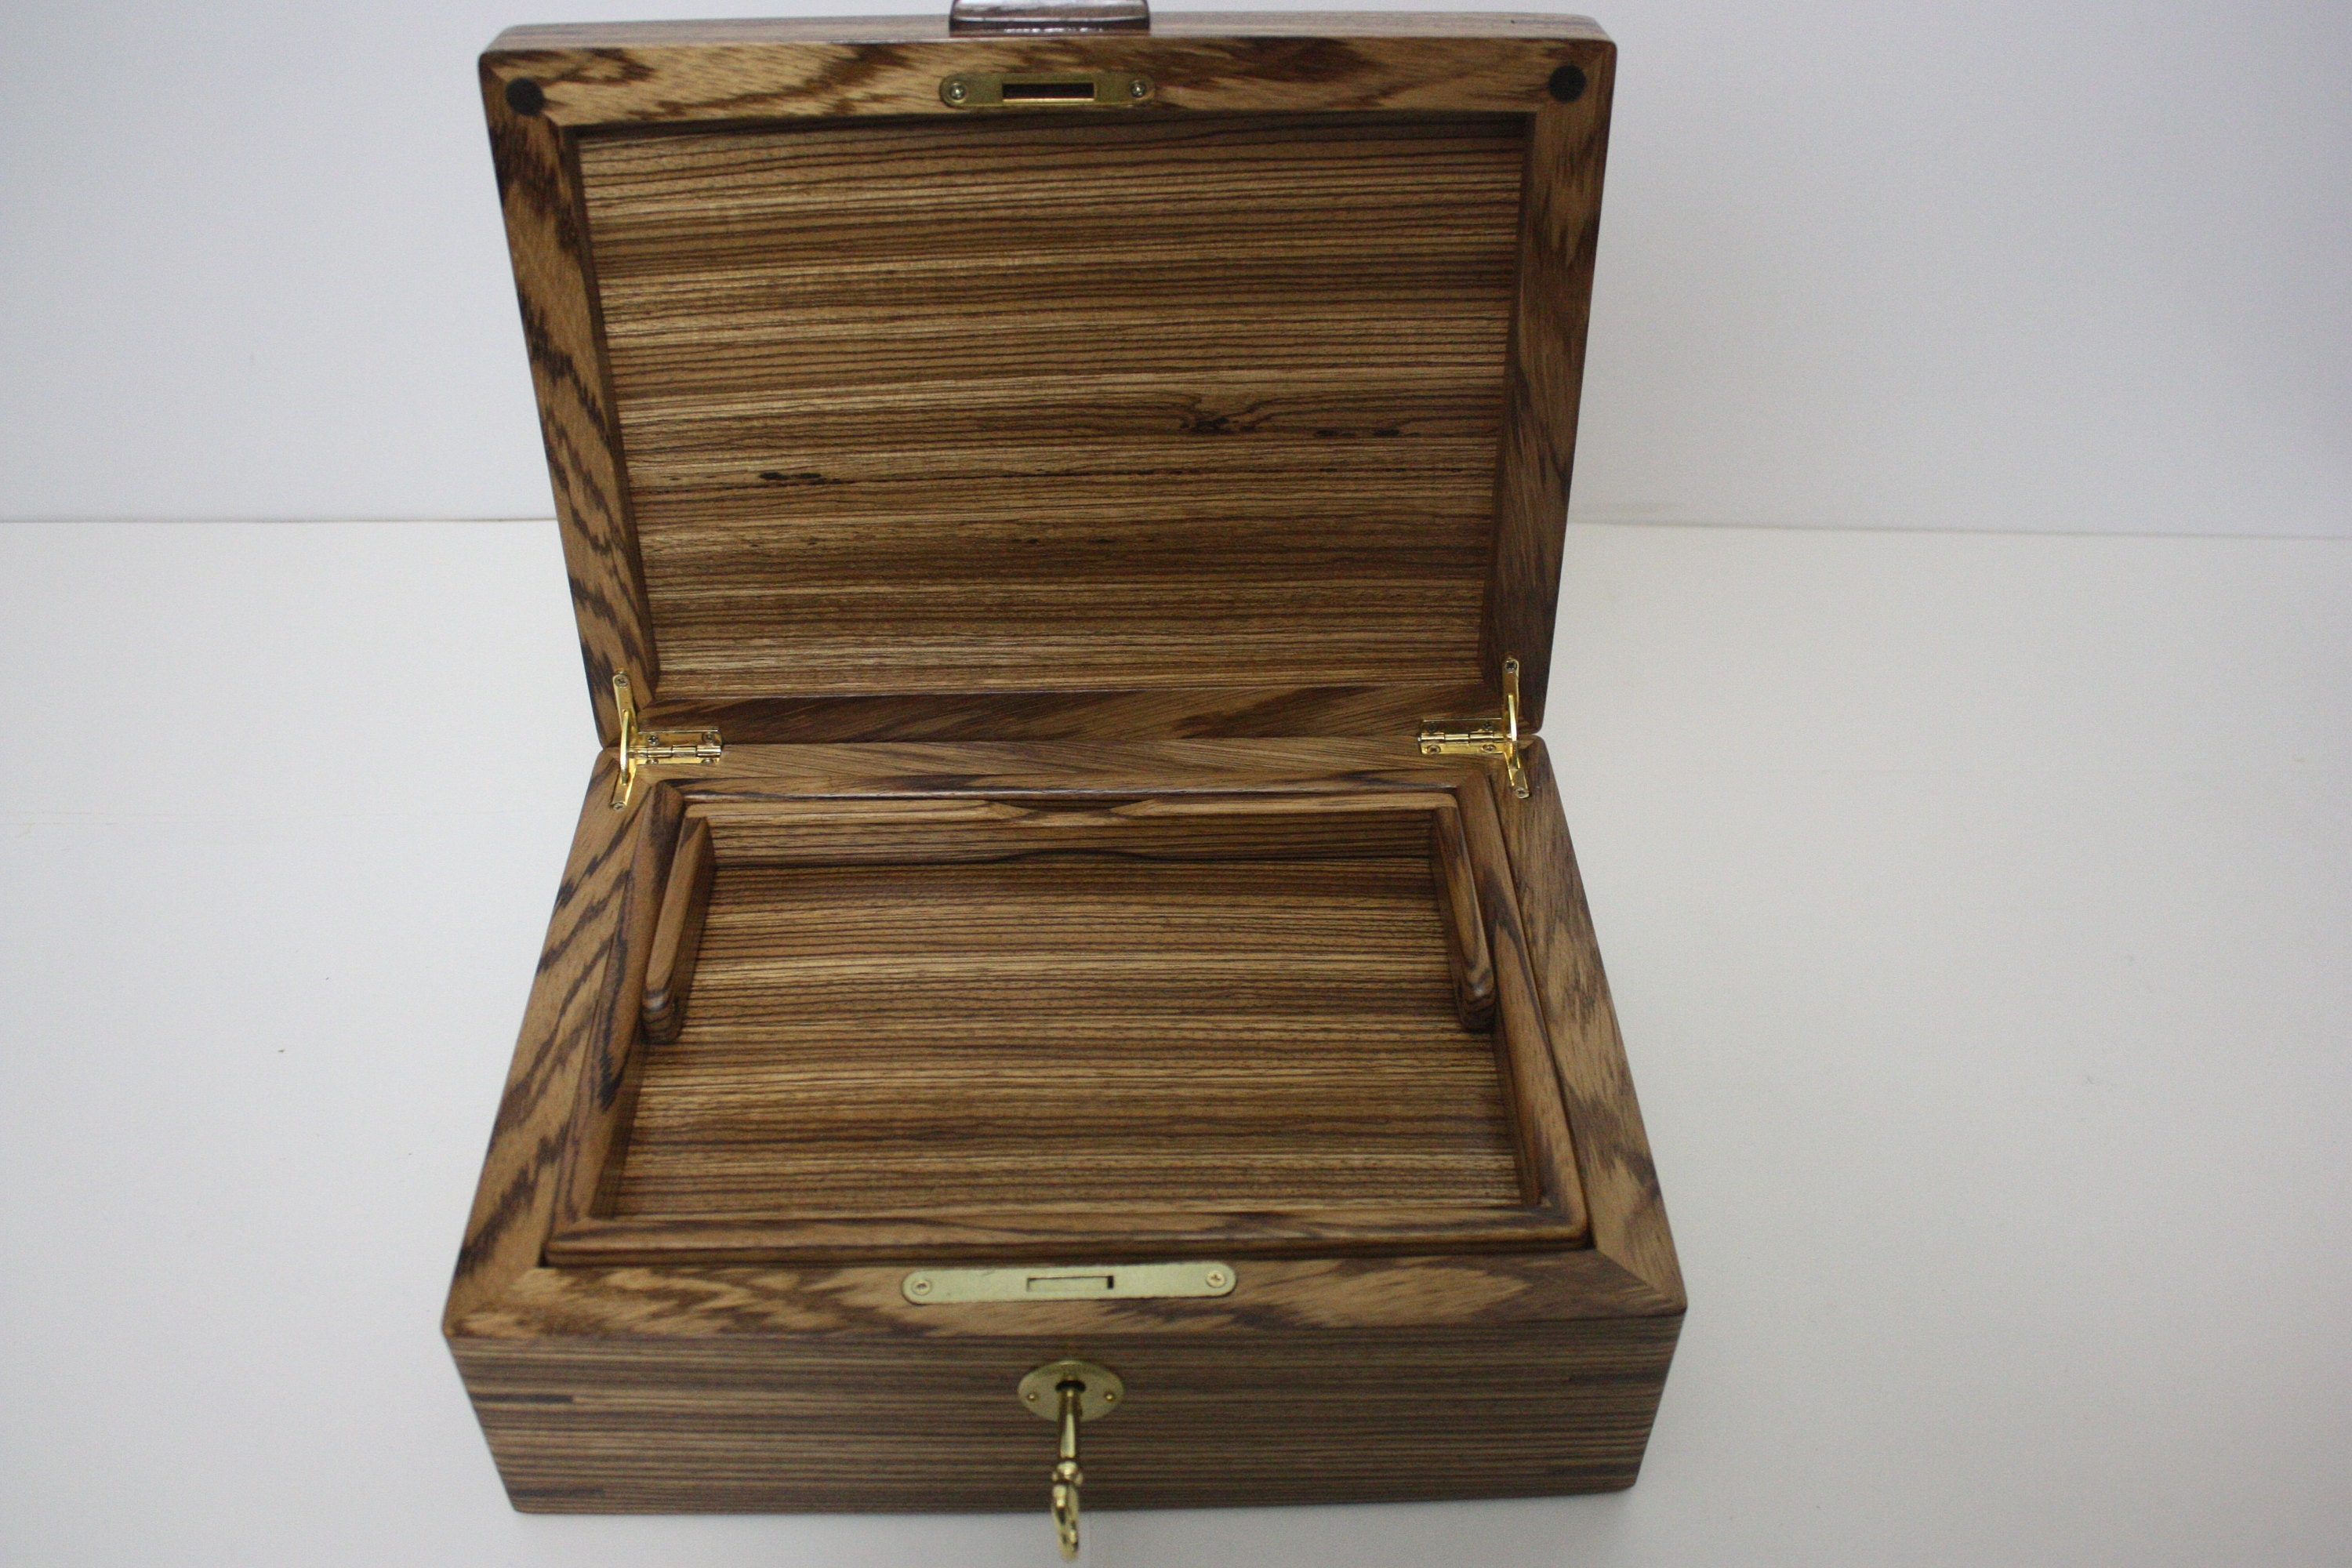 Zebrawood Box with Lift Out Tray